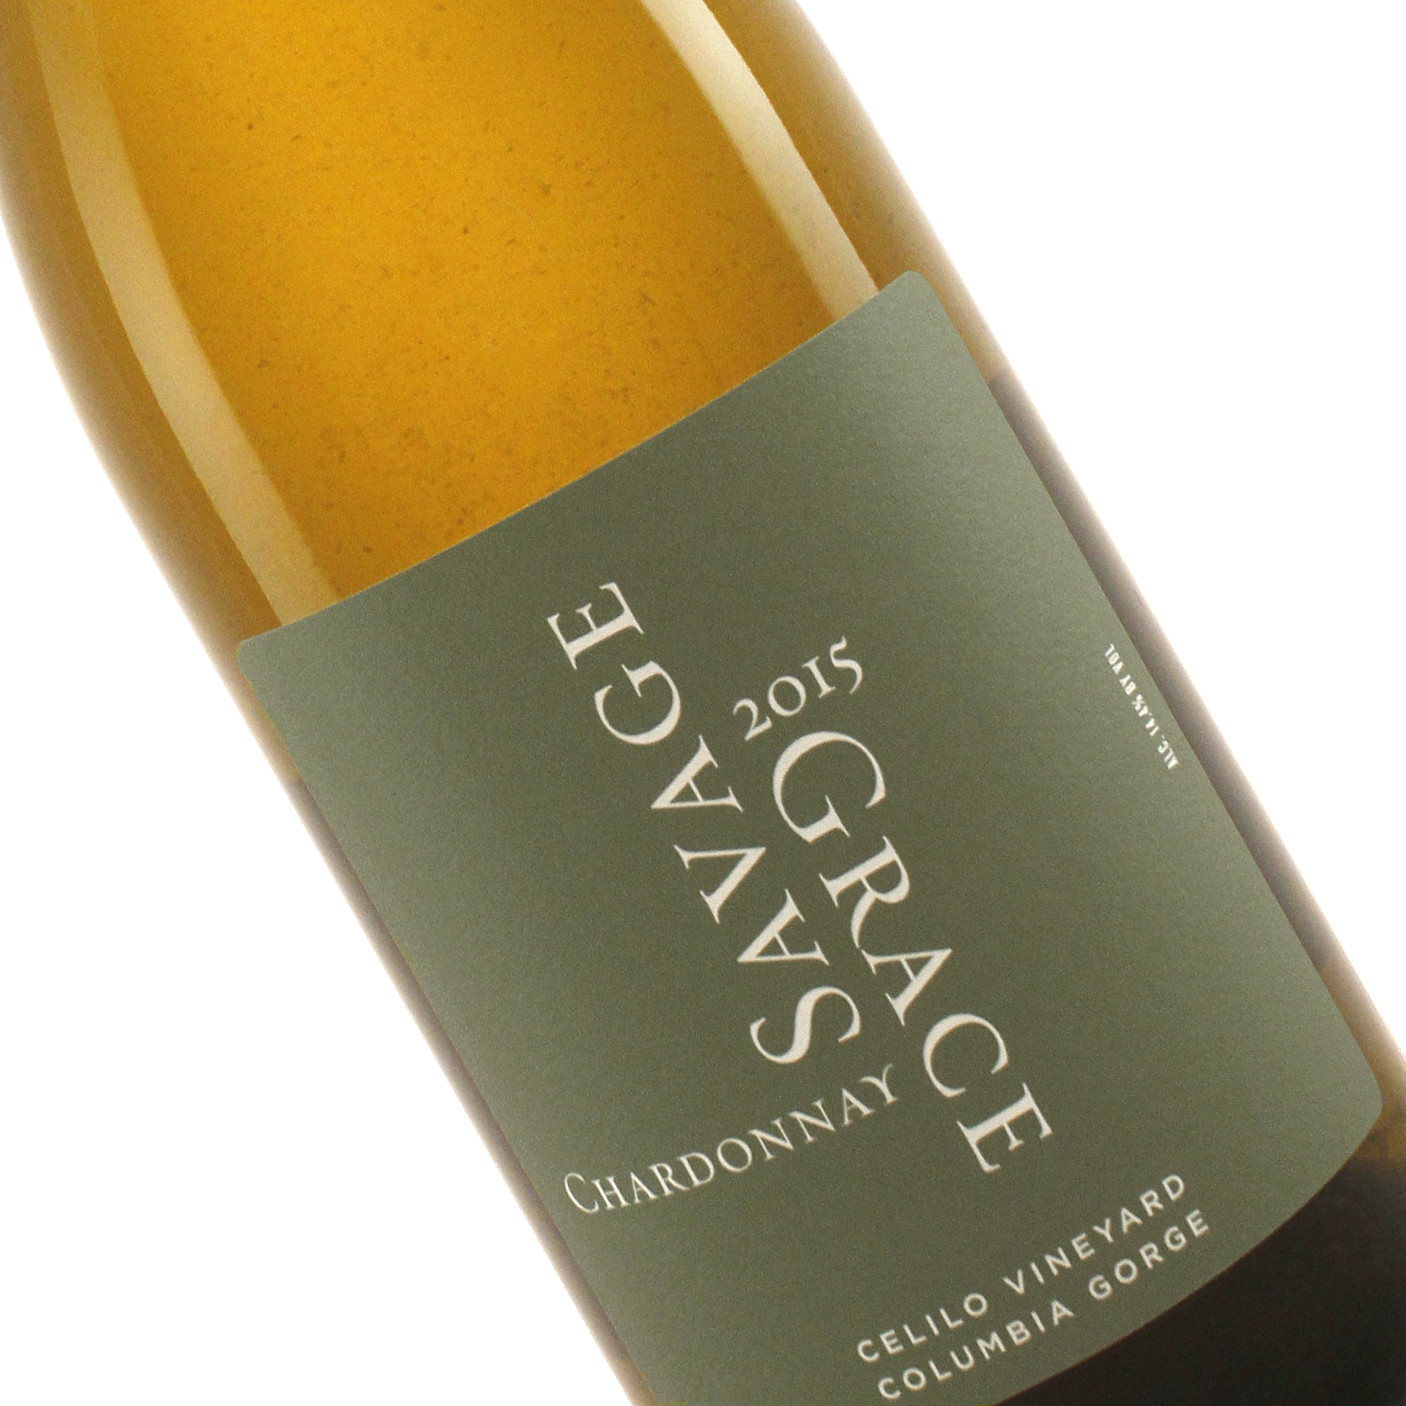 Savage Grace 2015 Chardonnay Celilo Vineyard, Columbia Gorge, Washington